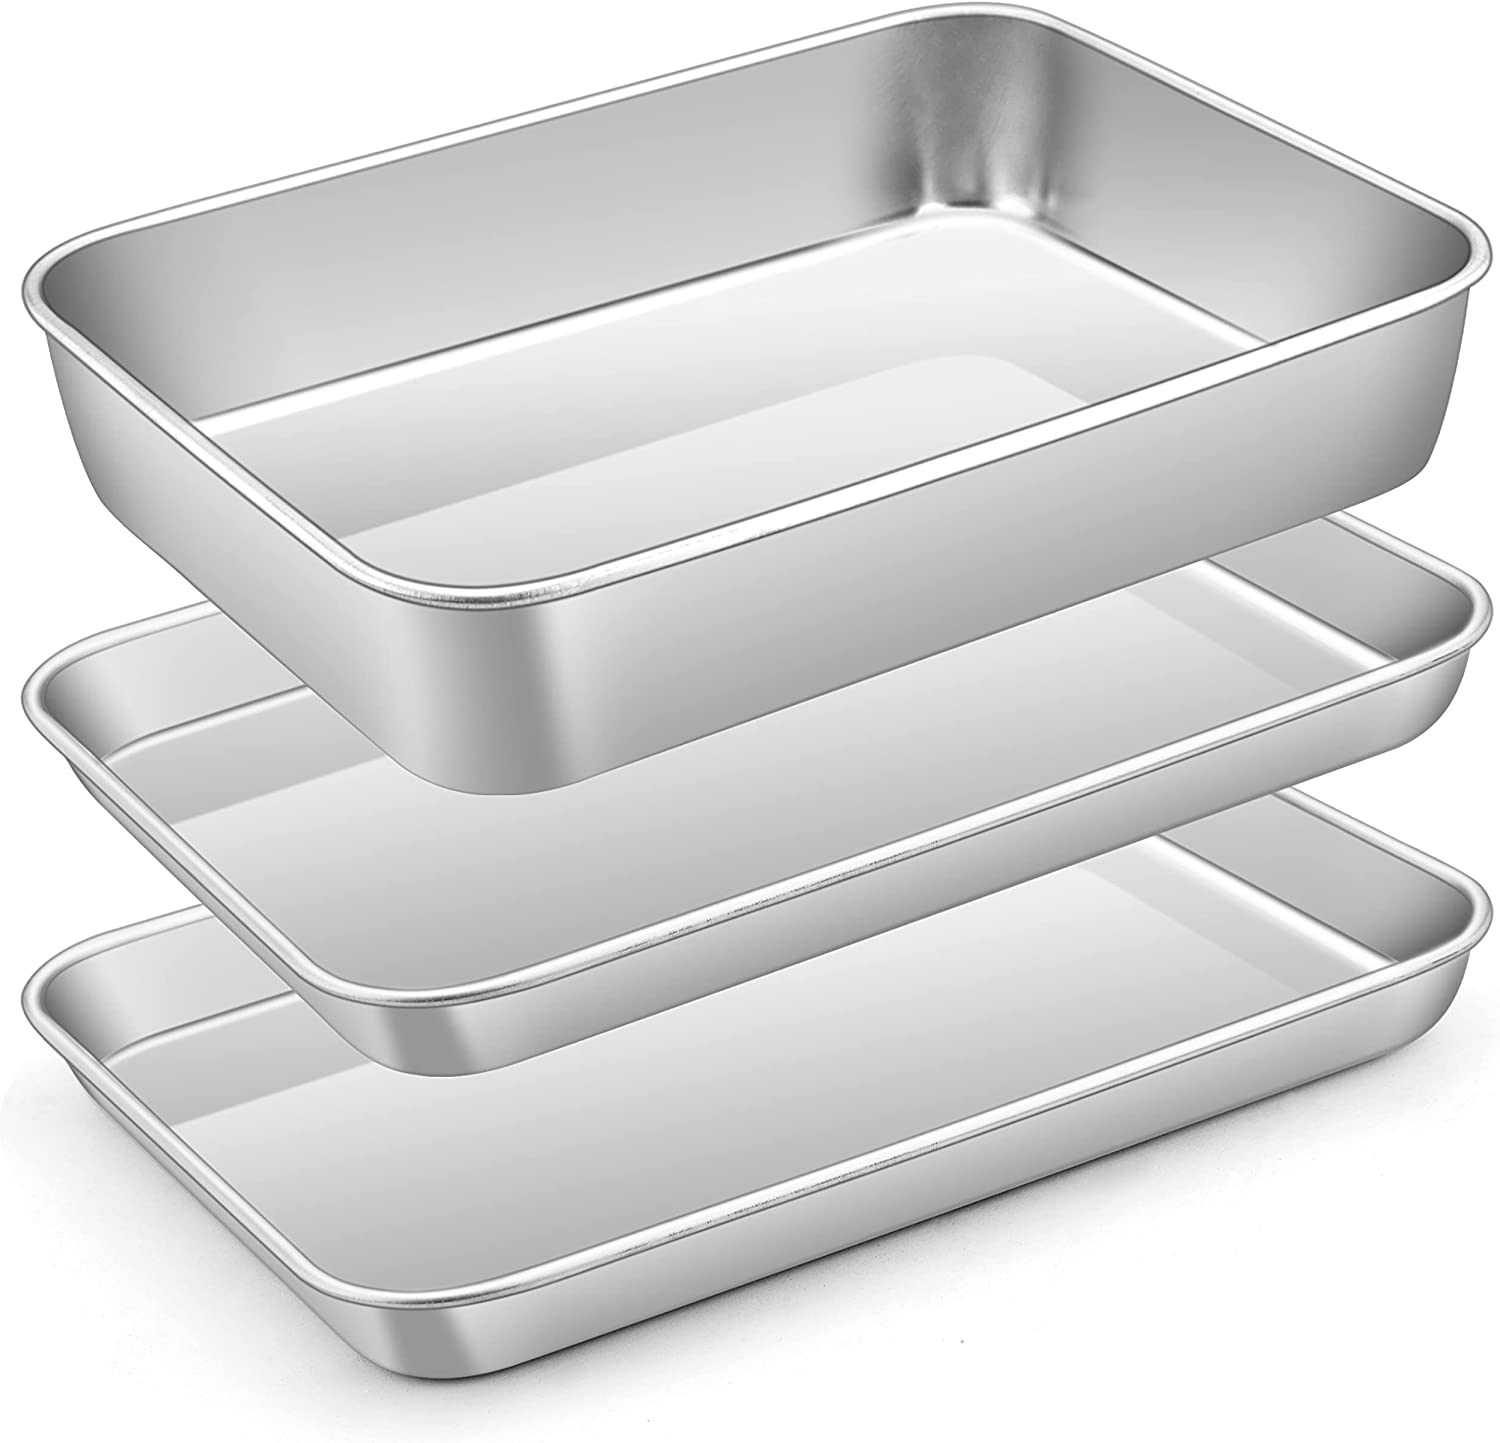 Small Baking Sheet Pan Set, E-far 9.4 x 7.3-Inch Stainless Steel Cookie Sheet Cake Pan for Toaster Oven, 3-Piece Metal Rectangle Rimmed Bakeware, Non-toxic & Dishwasher Safe